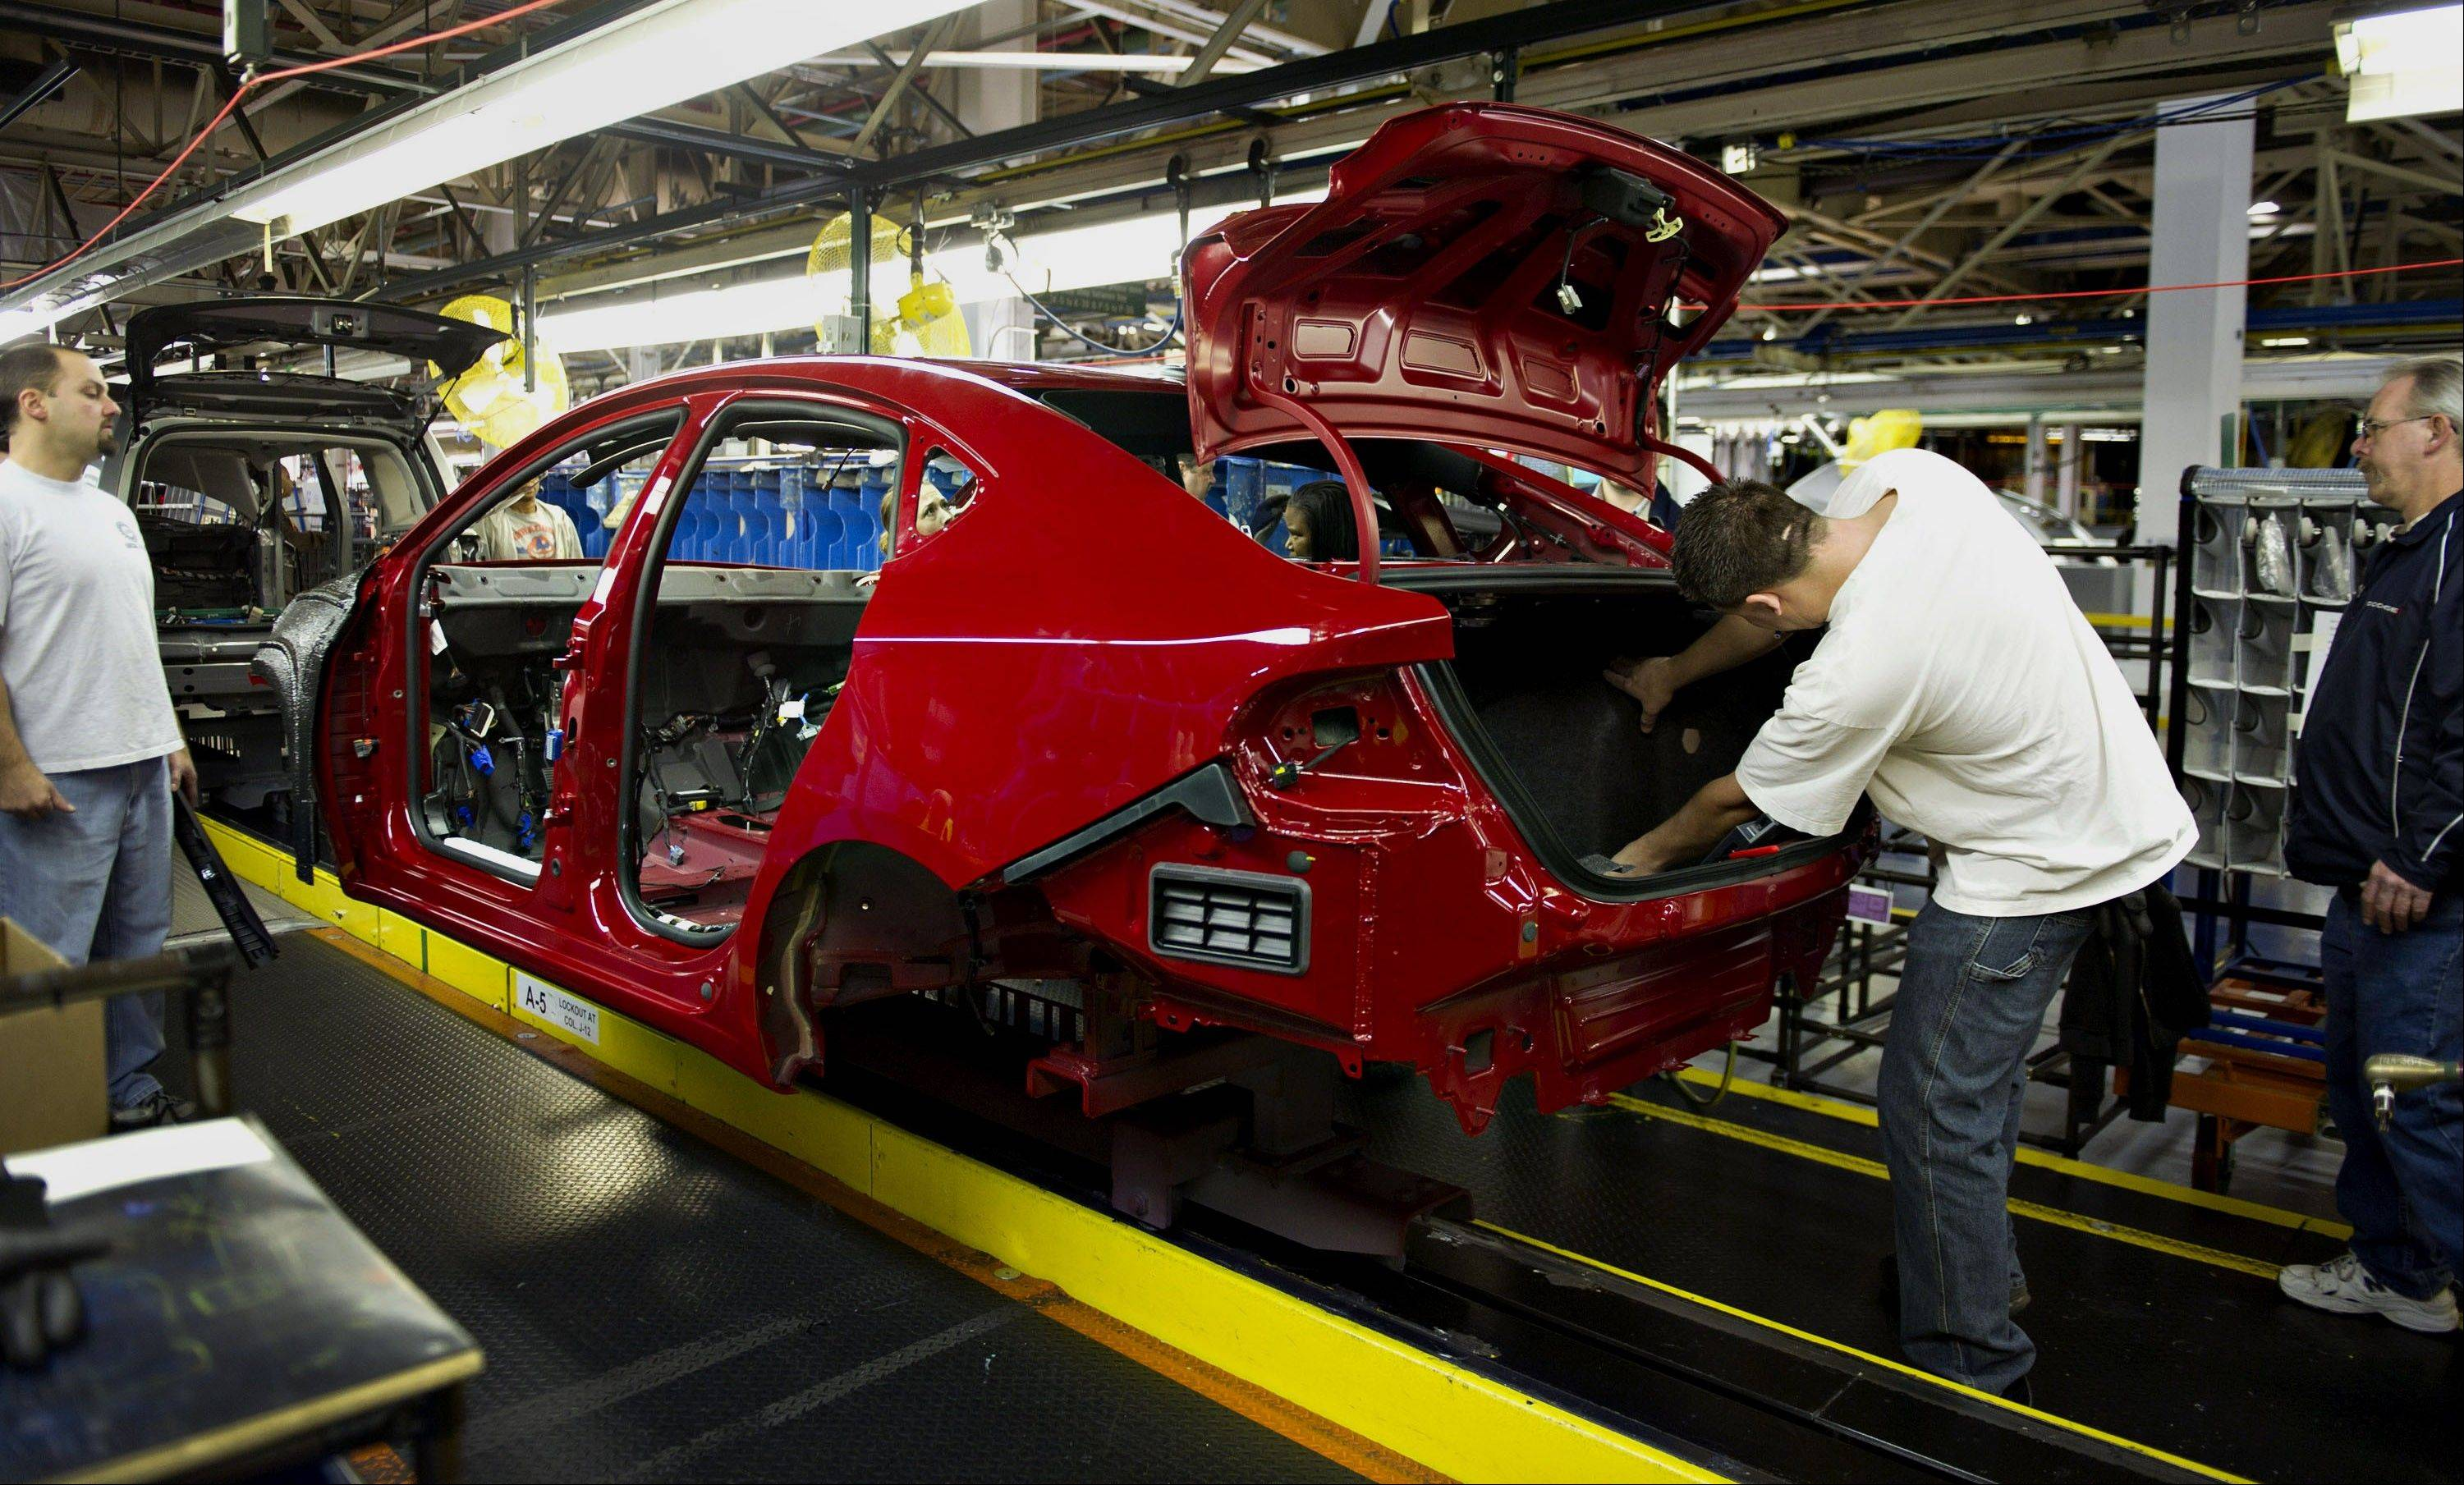 Chrysler Group LLC employees work on a 2013 Dodge Dart as it moves along the production line at the company's assembly plant in Belvidere, Illinois, U.S., on Thursday, Feb. 2, 2012. Chrysler announced it will add 1,800 more jobs at the Belvidere plant, nearly 500 .